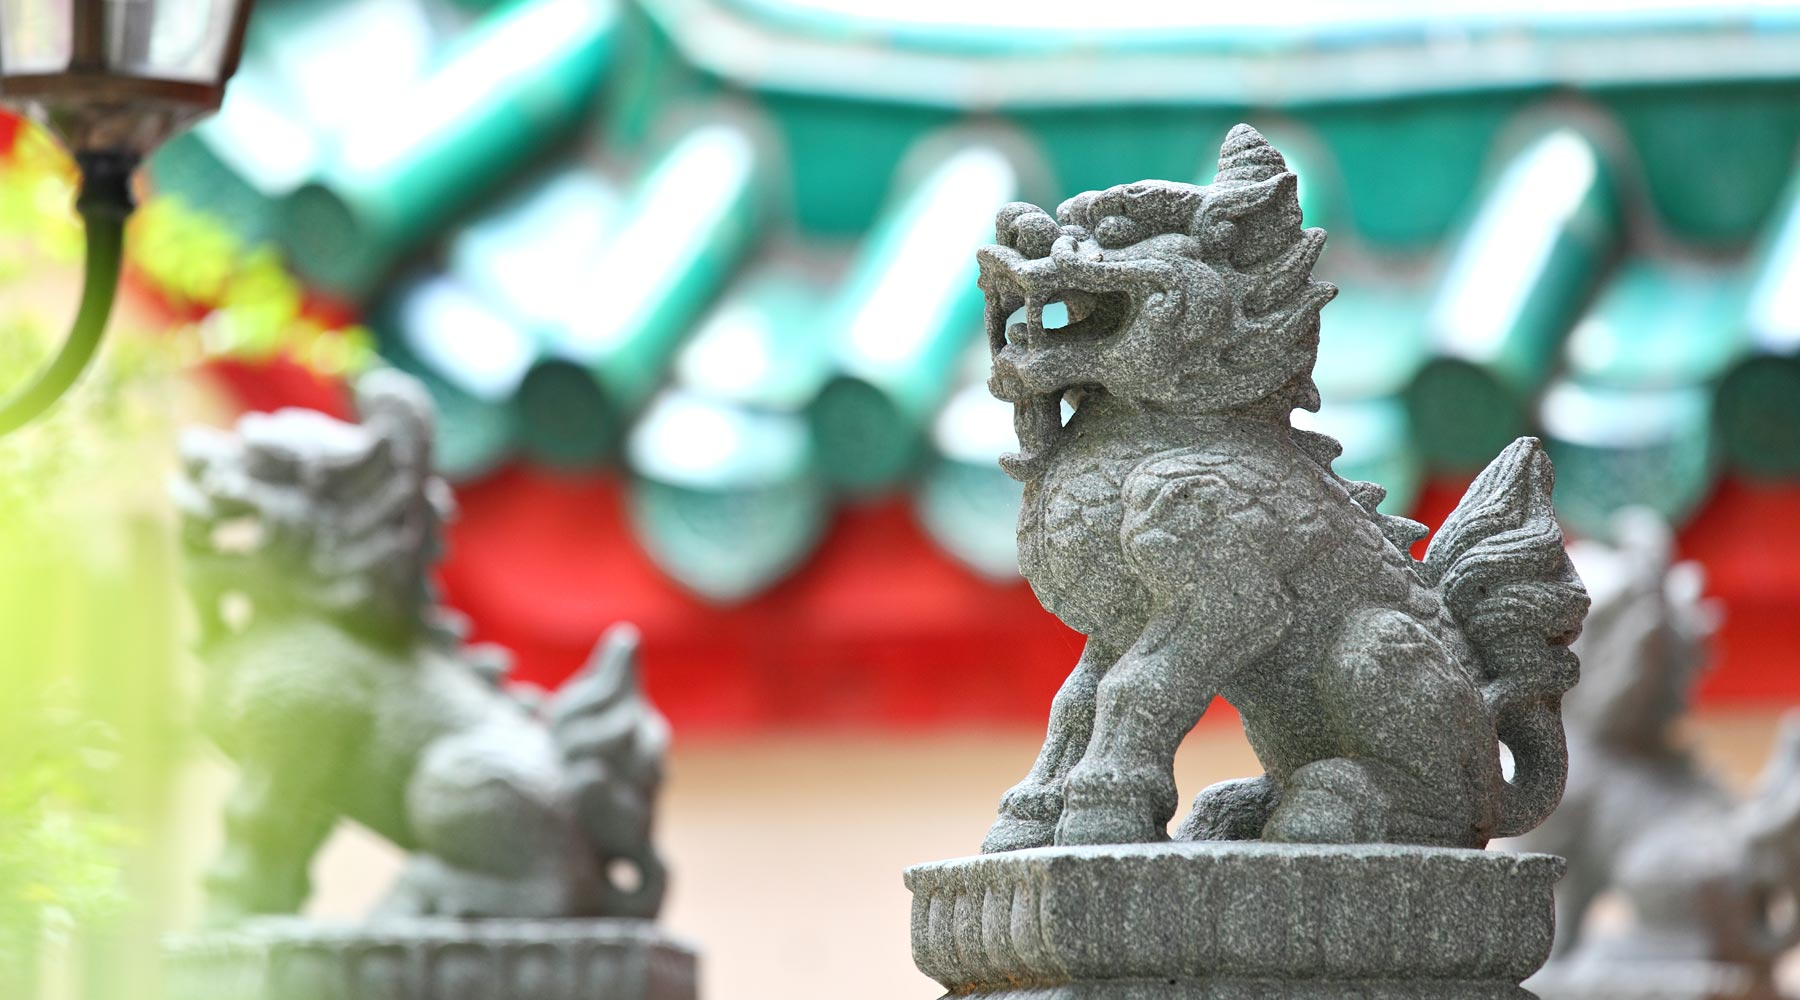 Dragon in Chinese – Types, History, Symbolism, and Legends